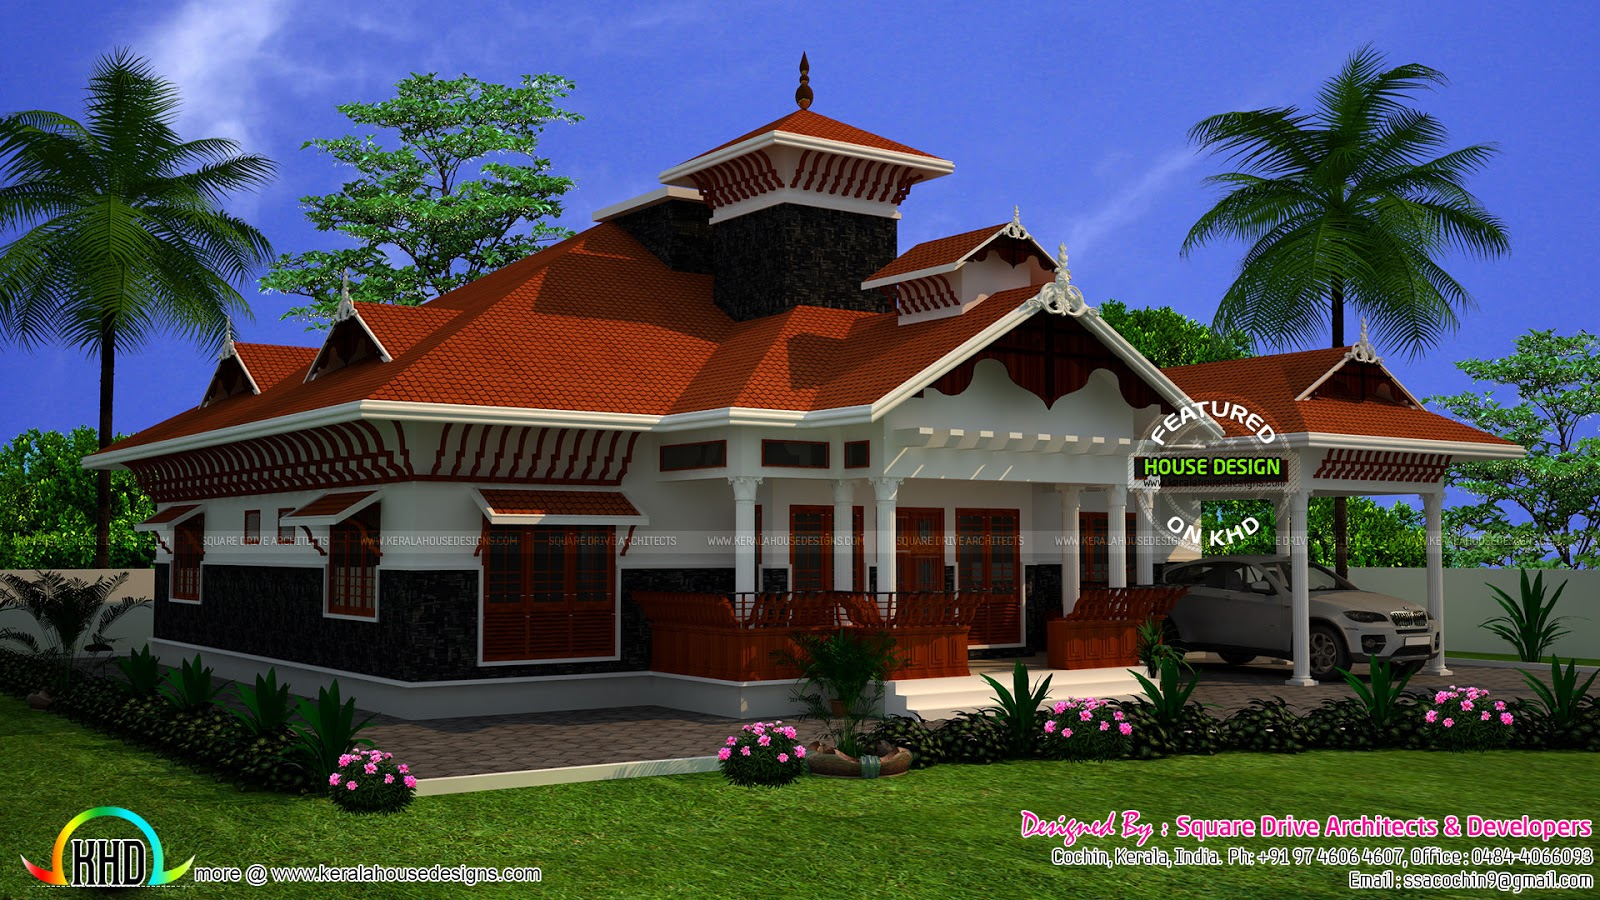 Awesome kerala home with interiors kerala home design for Kerala traditional home plans with photos